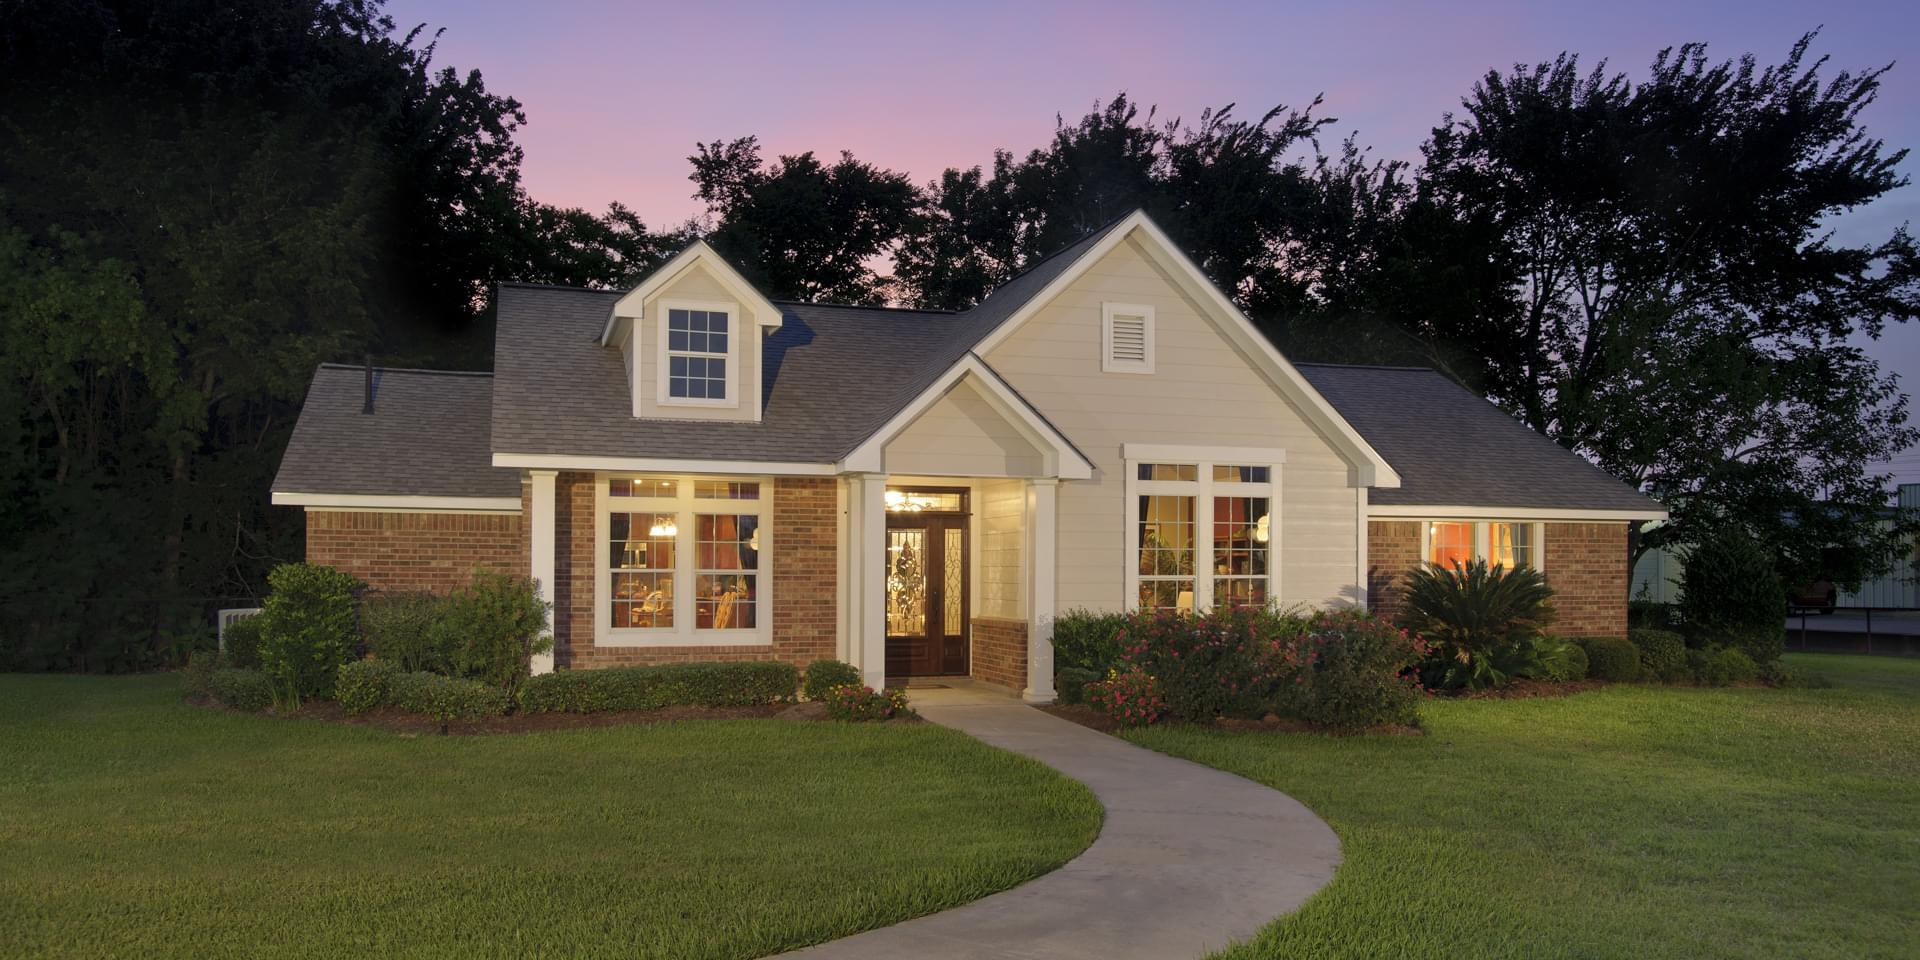 The Palacios Custom Home Plan from Tilson Homes